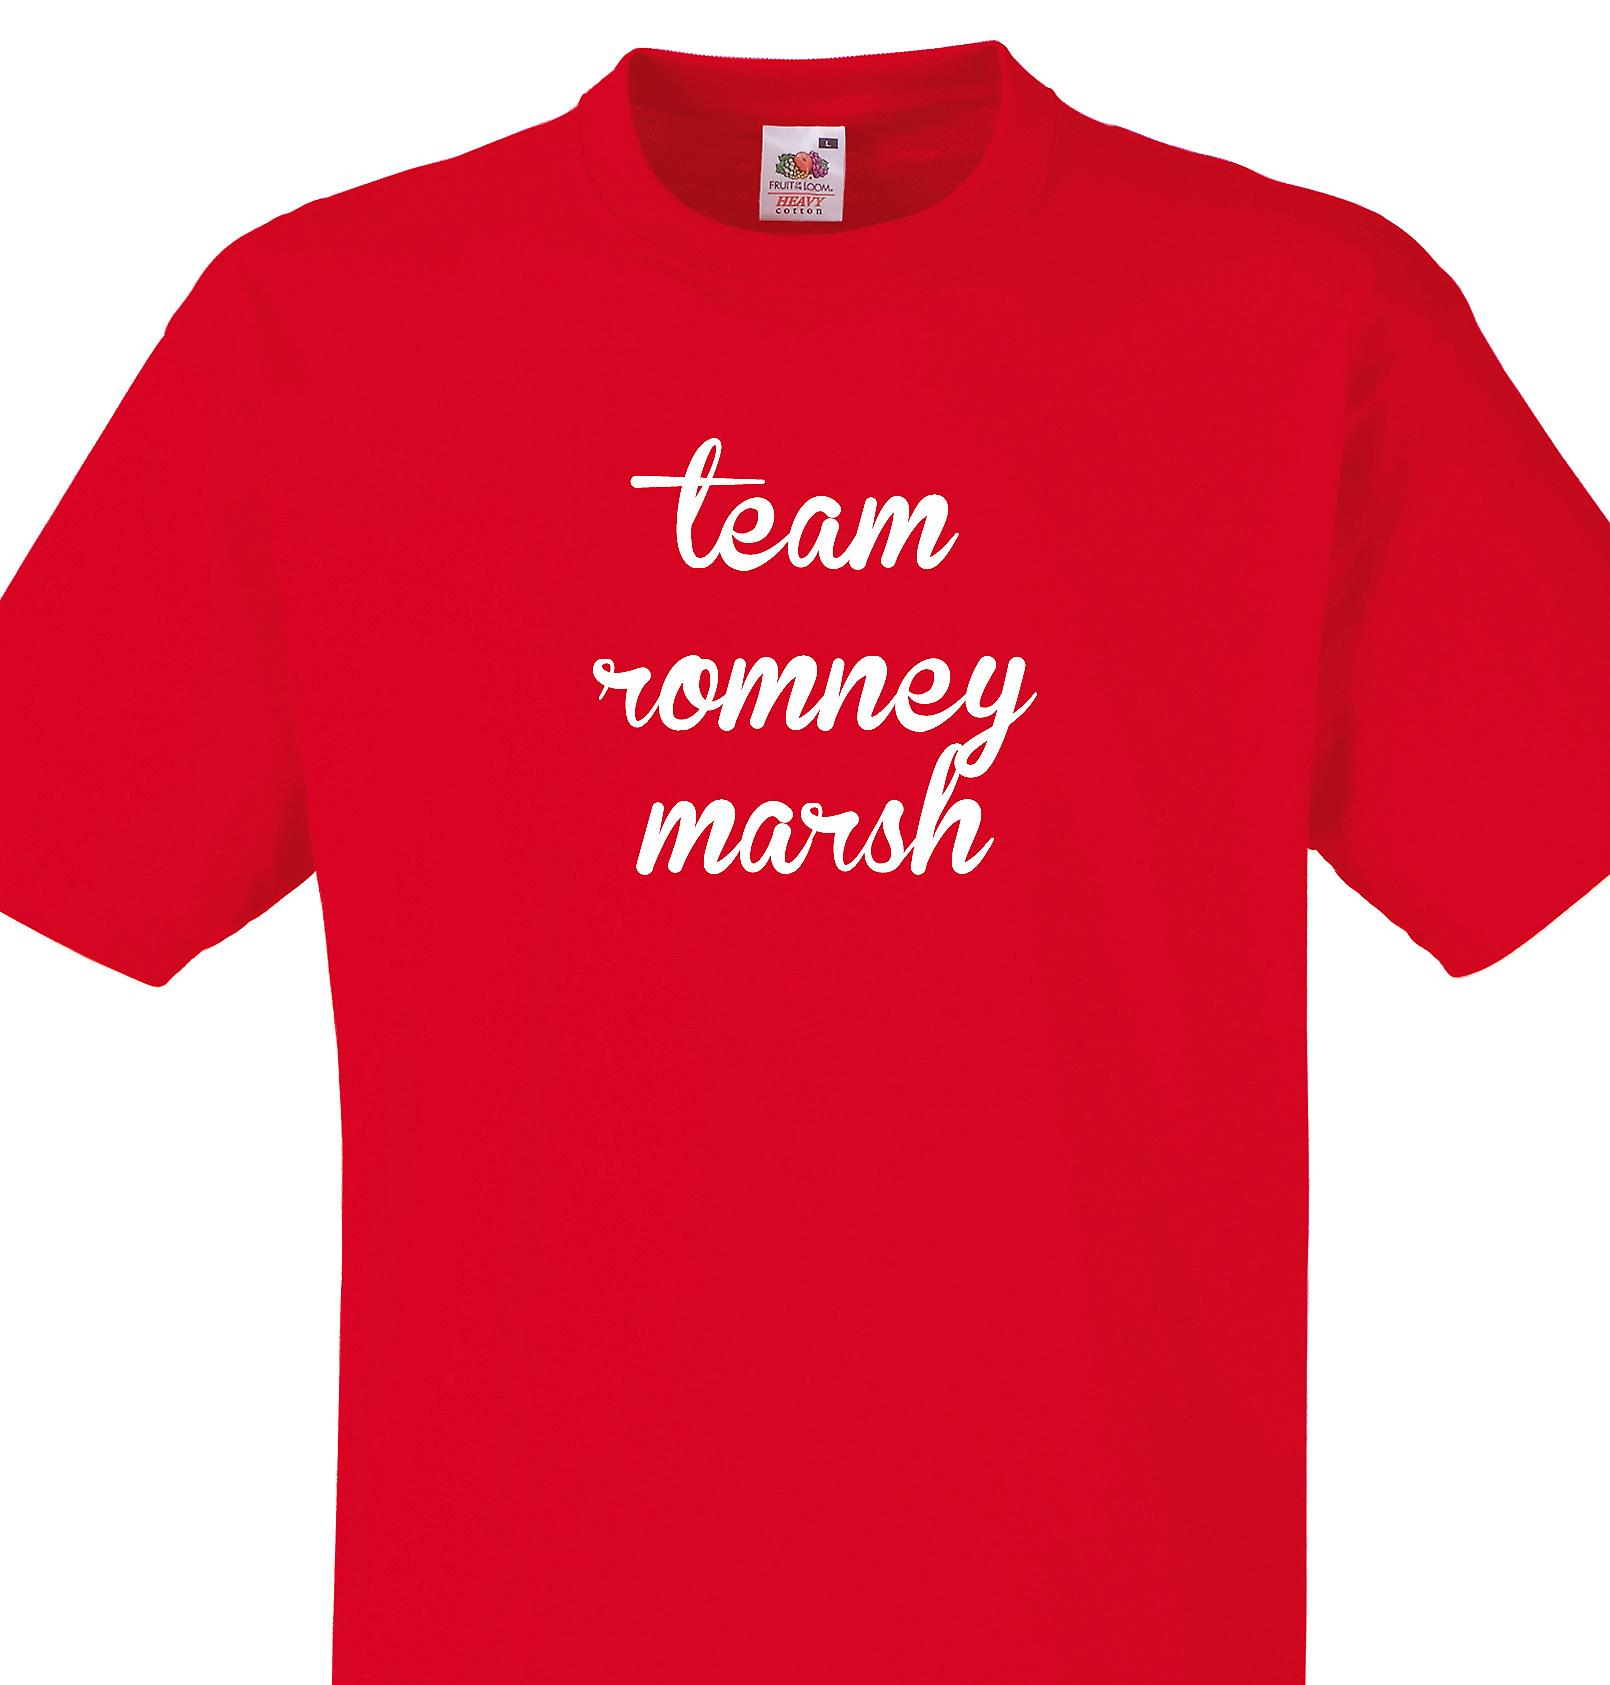 Team Romney marsh Red T shirt